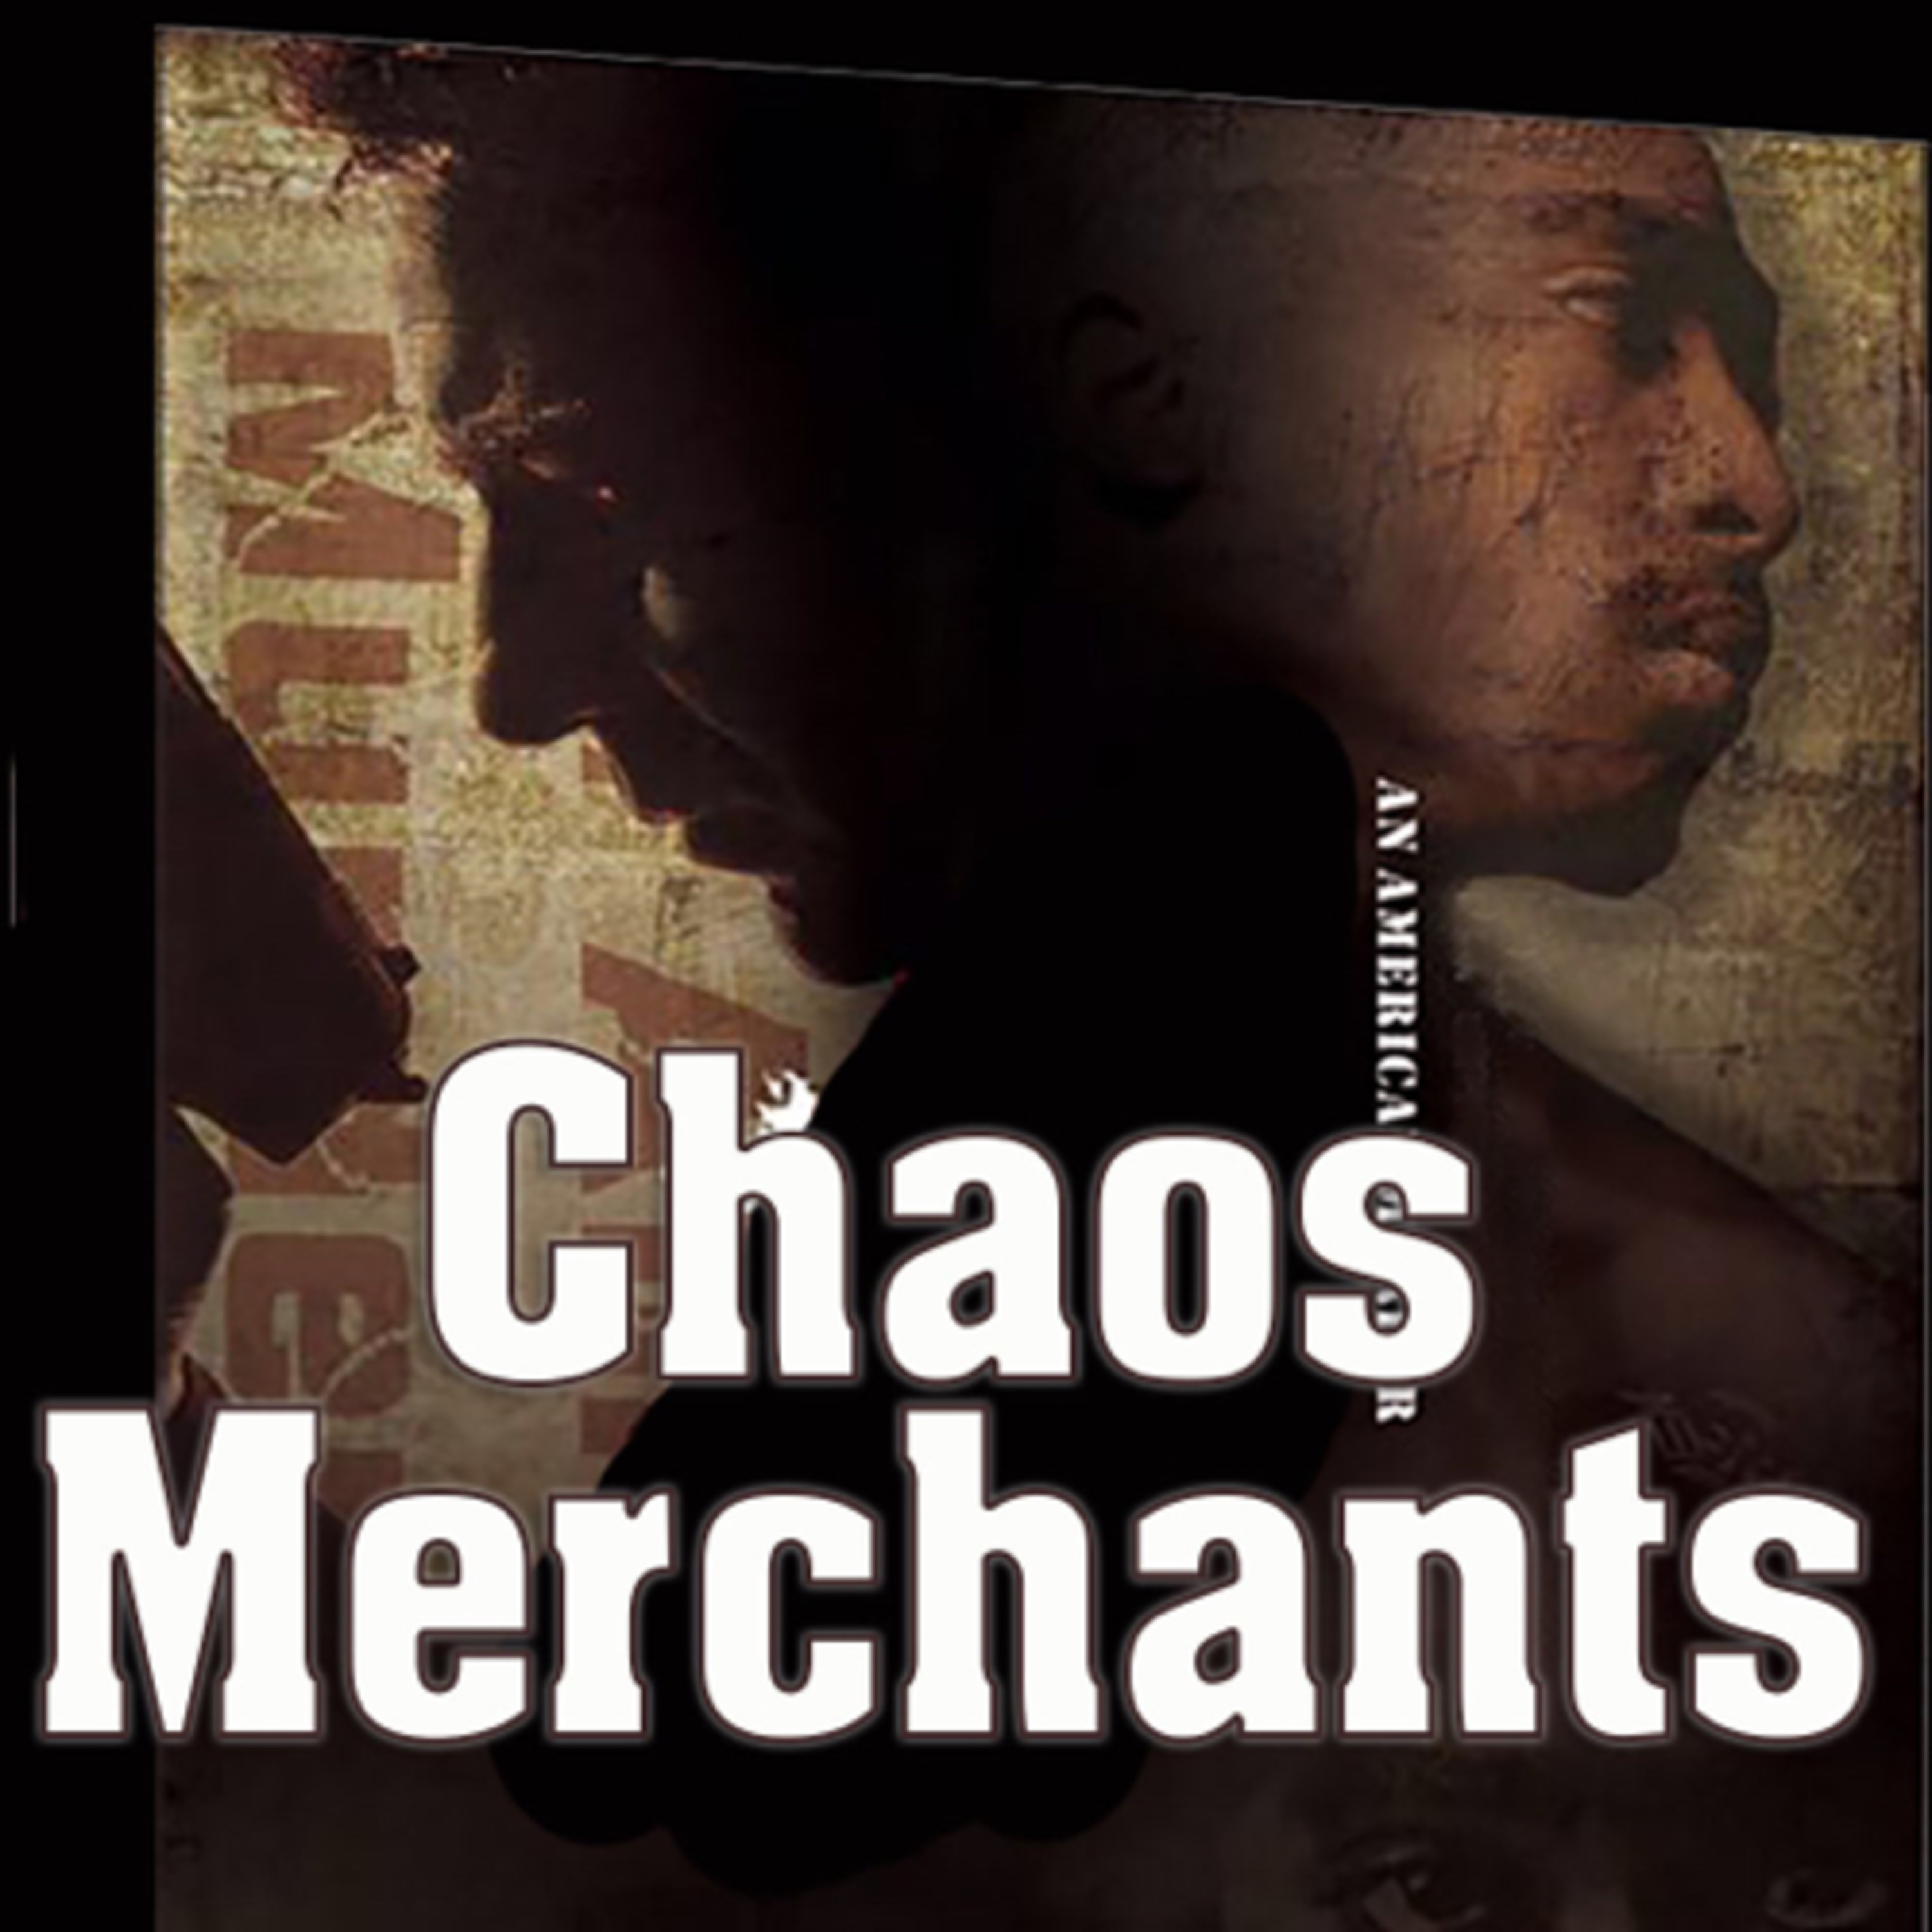 Chaos Merchants Episode 4 by Michael Douglas Carlin